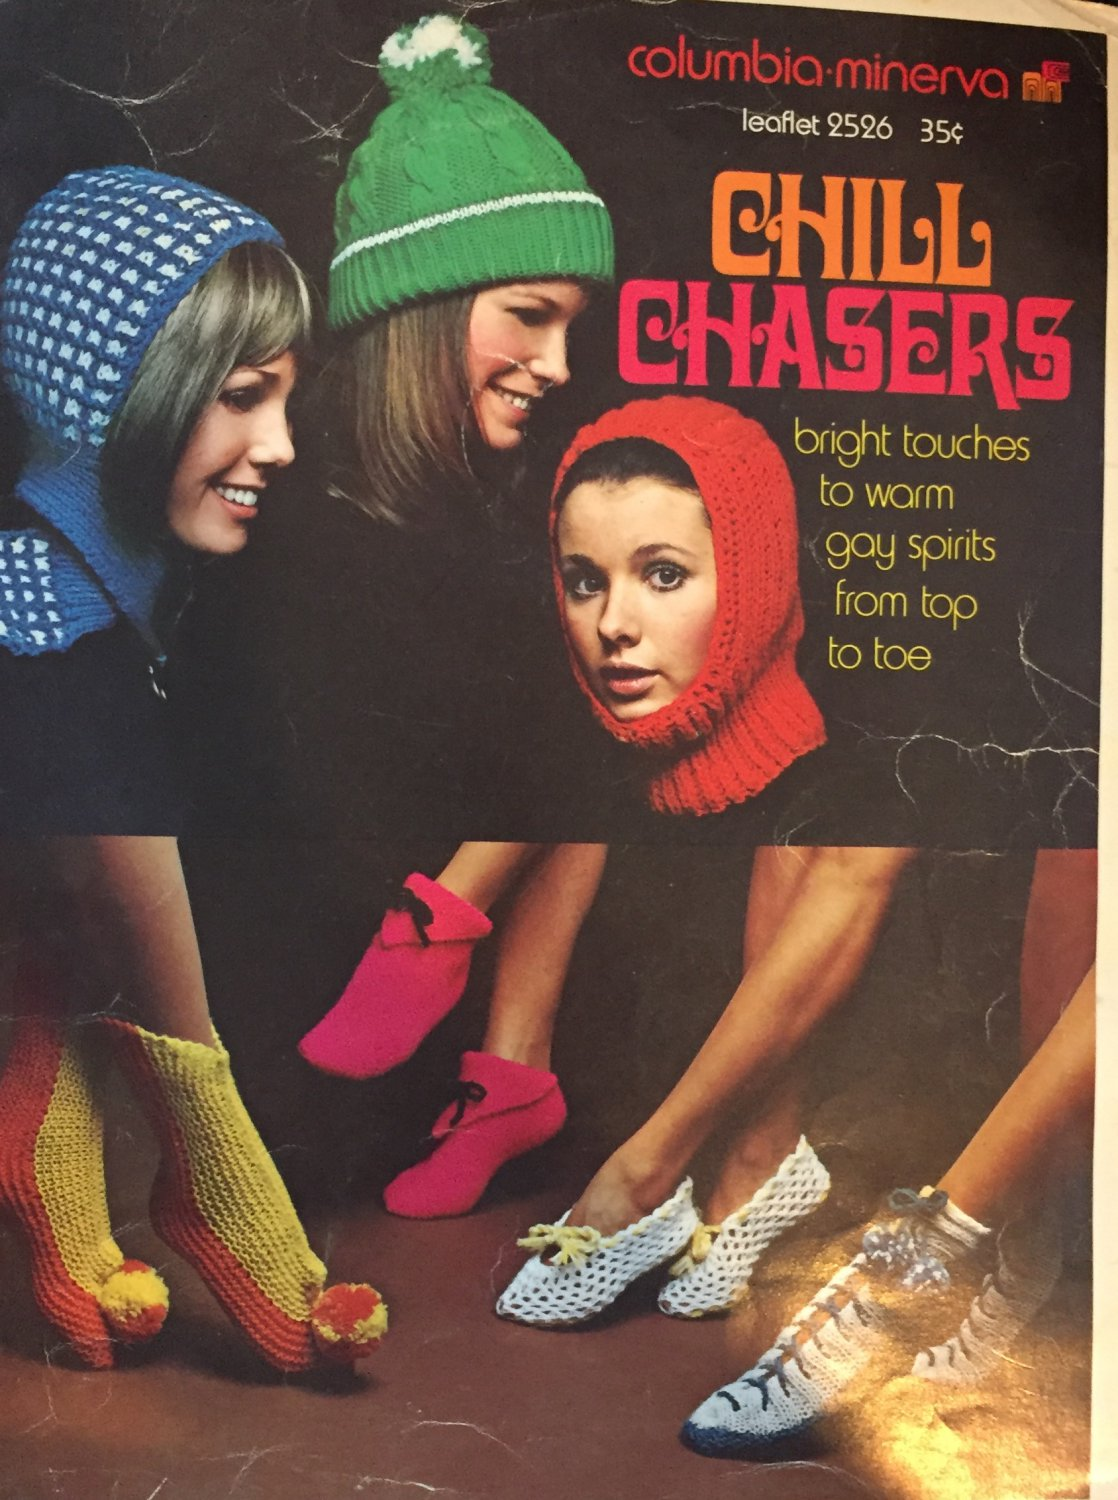 Chill Chasers hats scarves mittens slippers Columbia Minerva 2526 1970's Knitting & crochet patterns